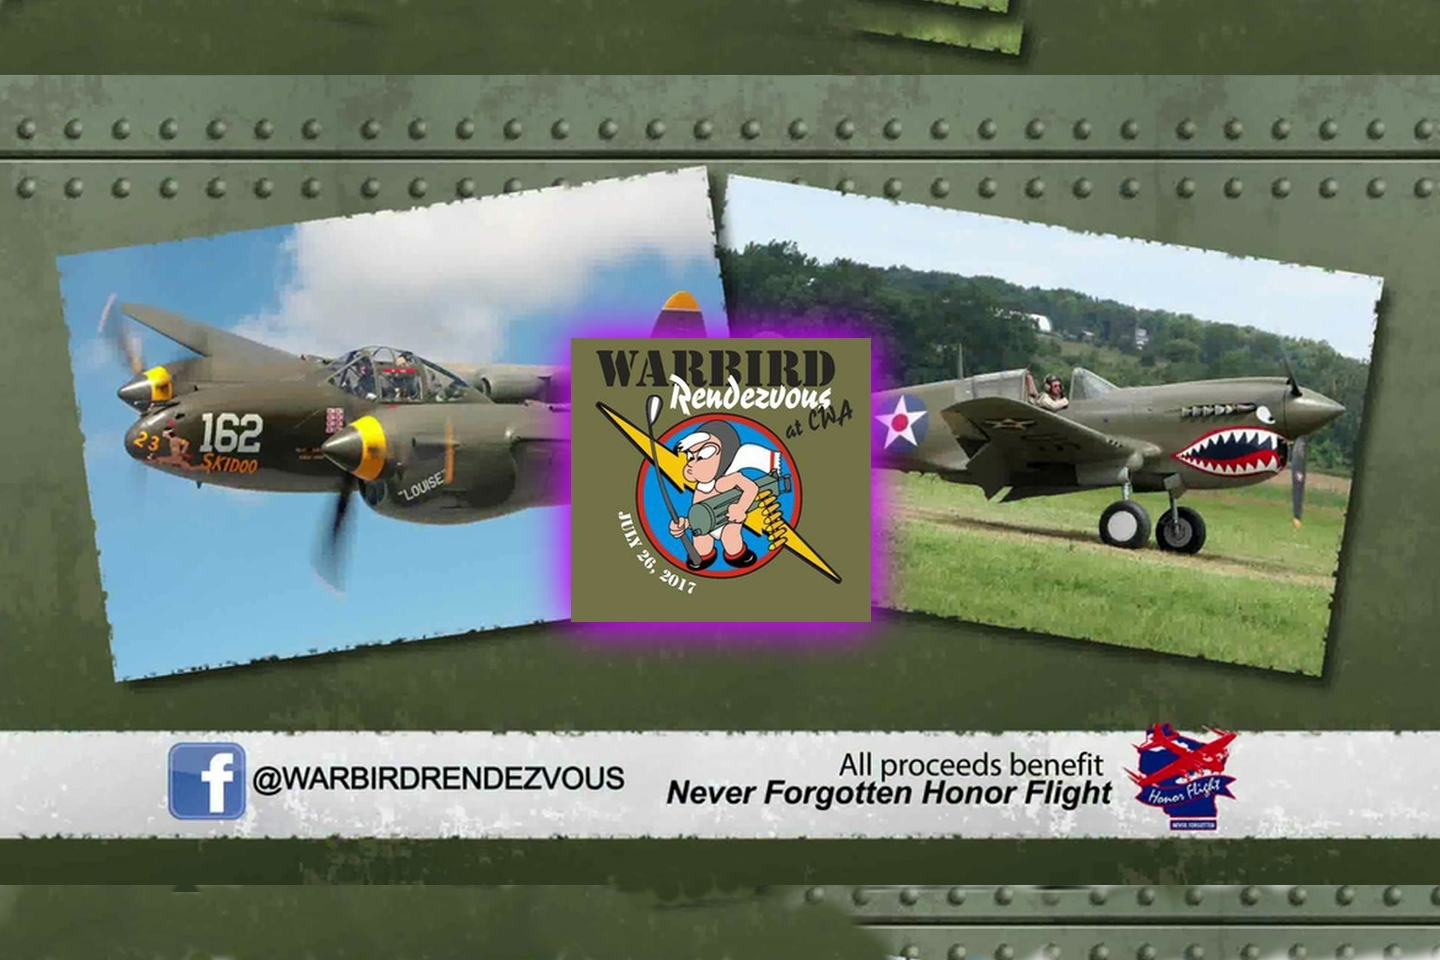 Promoting Warbirds Rendevous at CWA